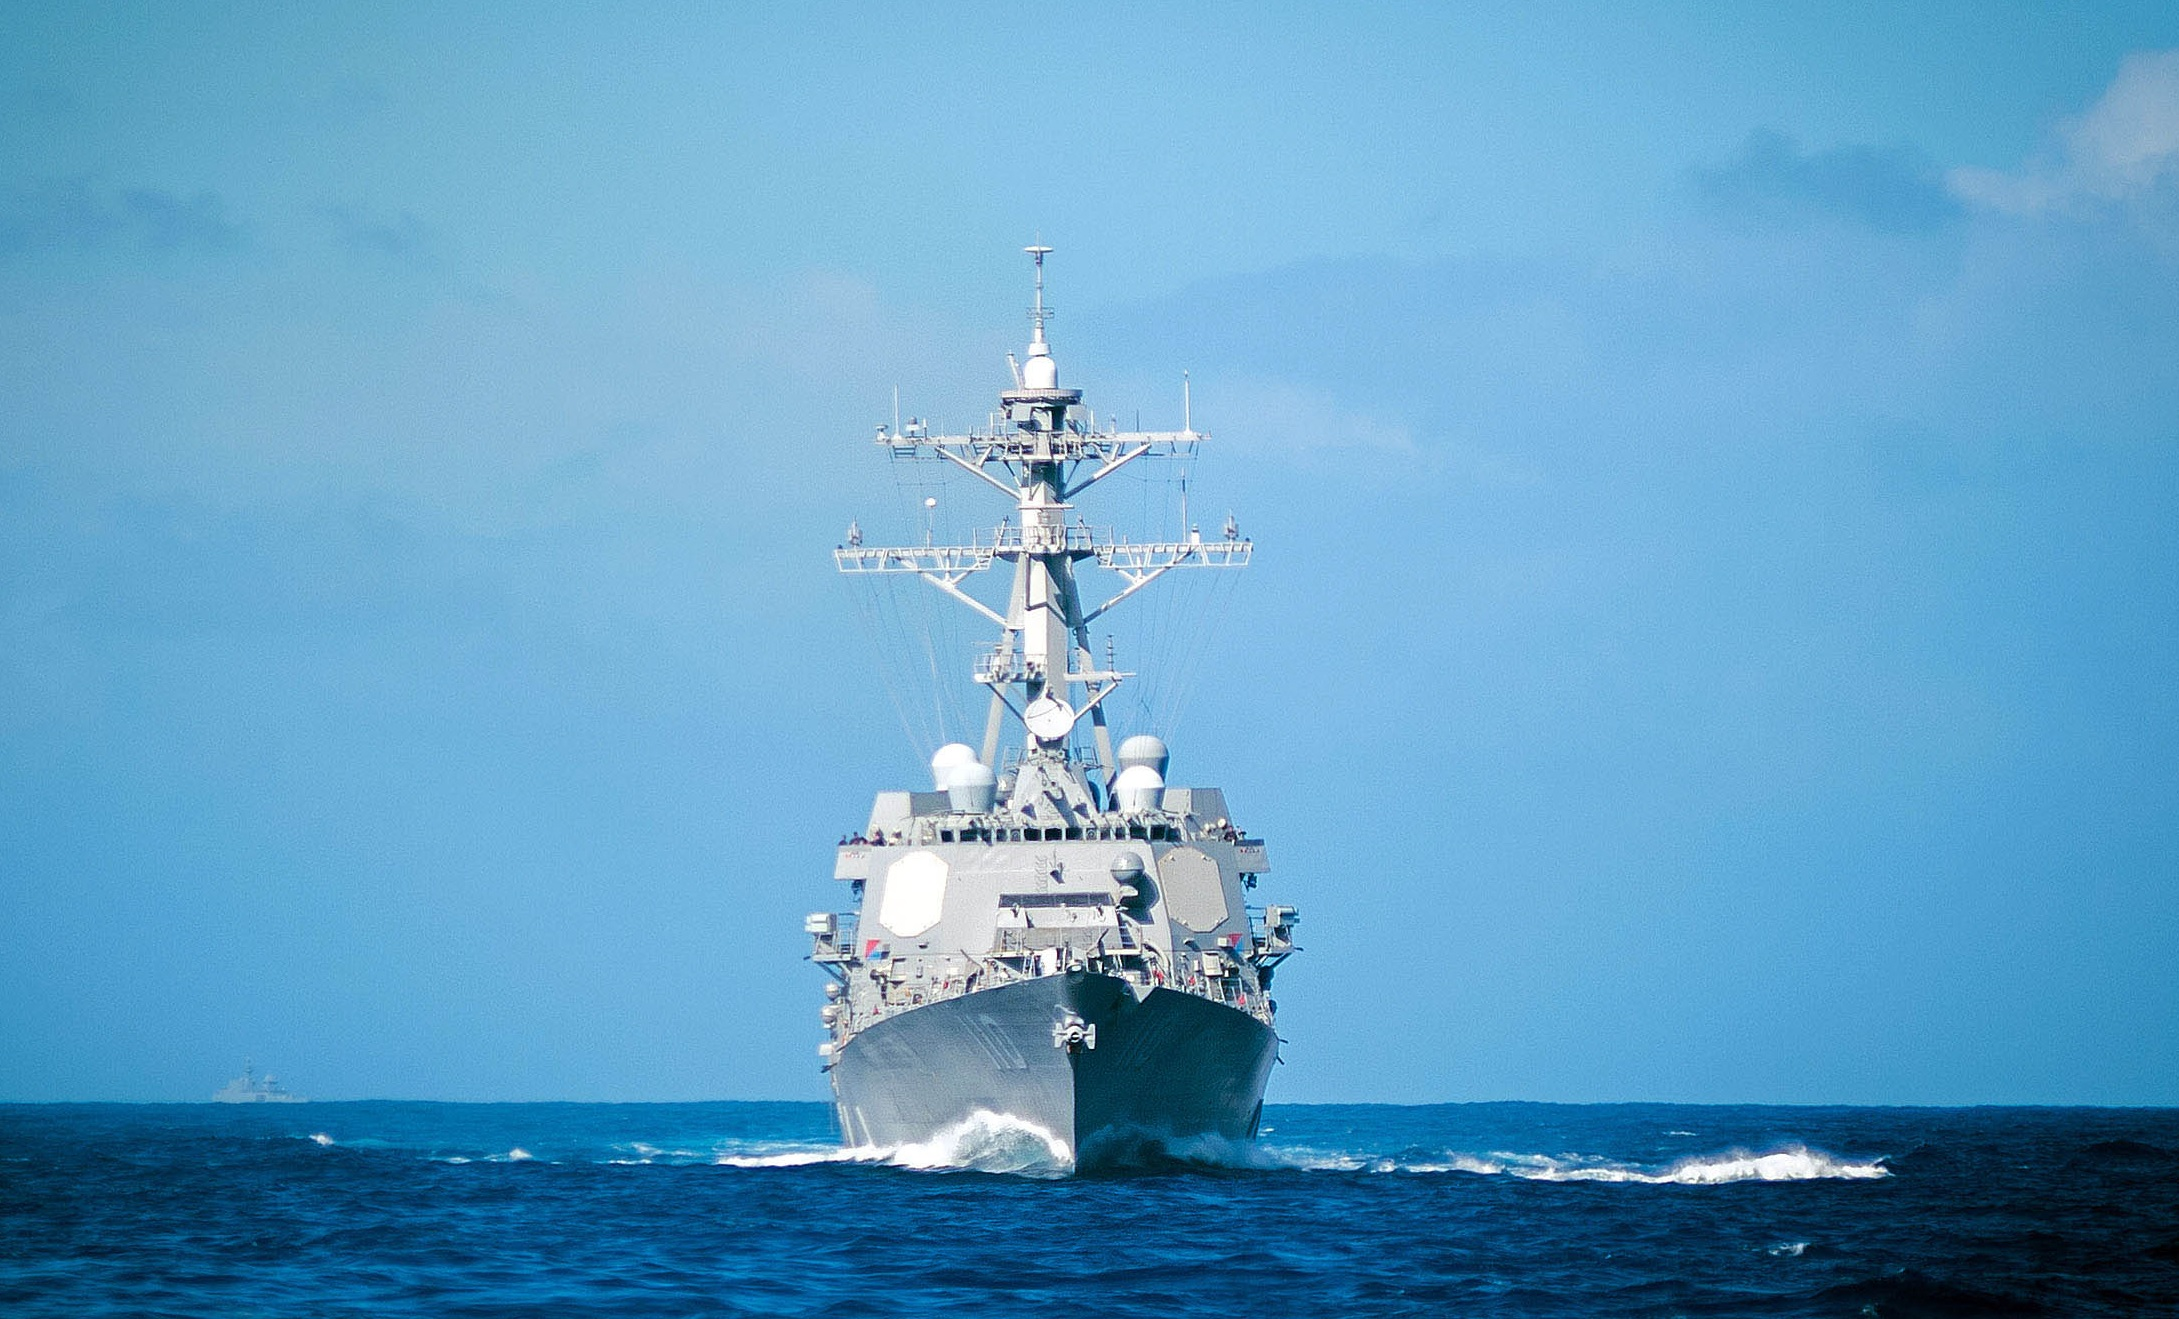 The destroyer William P. Lawrence underway in the Pacific. The U.S. Navy is looking to upgrade all the Flight IIA destroyers with Spy-6-type radars, a major capability increase over the Spy-1D radars currently installed. (U.S. Navy photo)